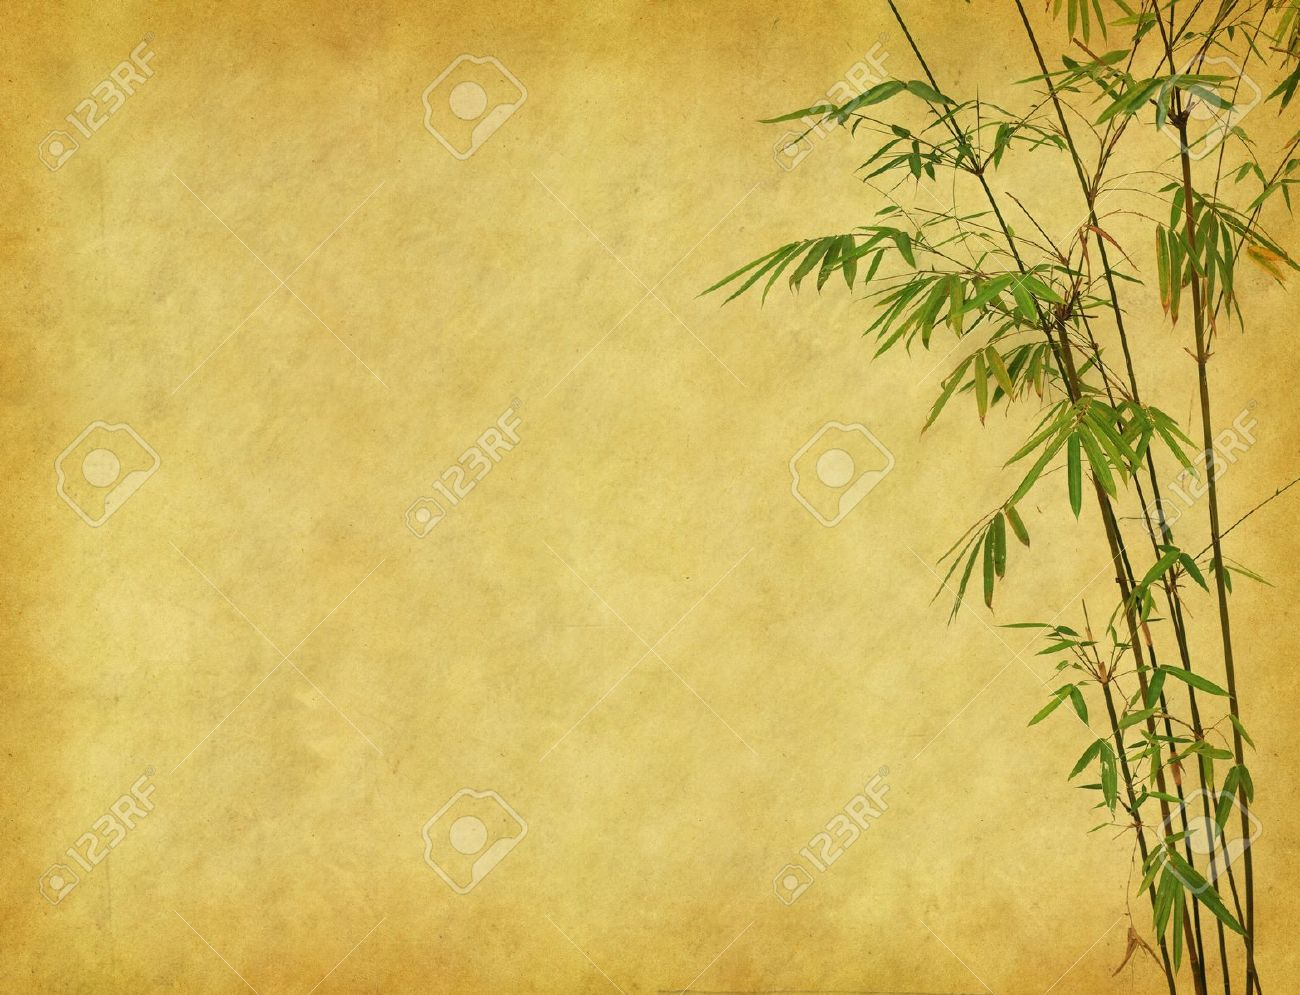 Download Chinese Bamboo Wallpaper Gallery